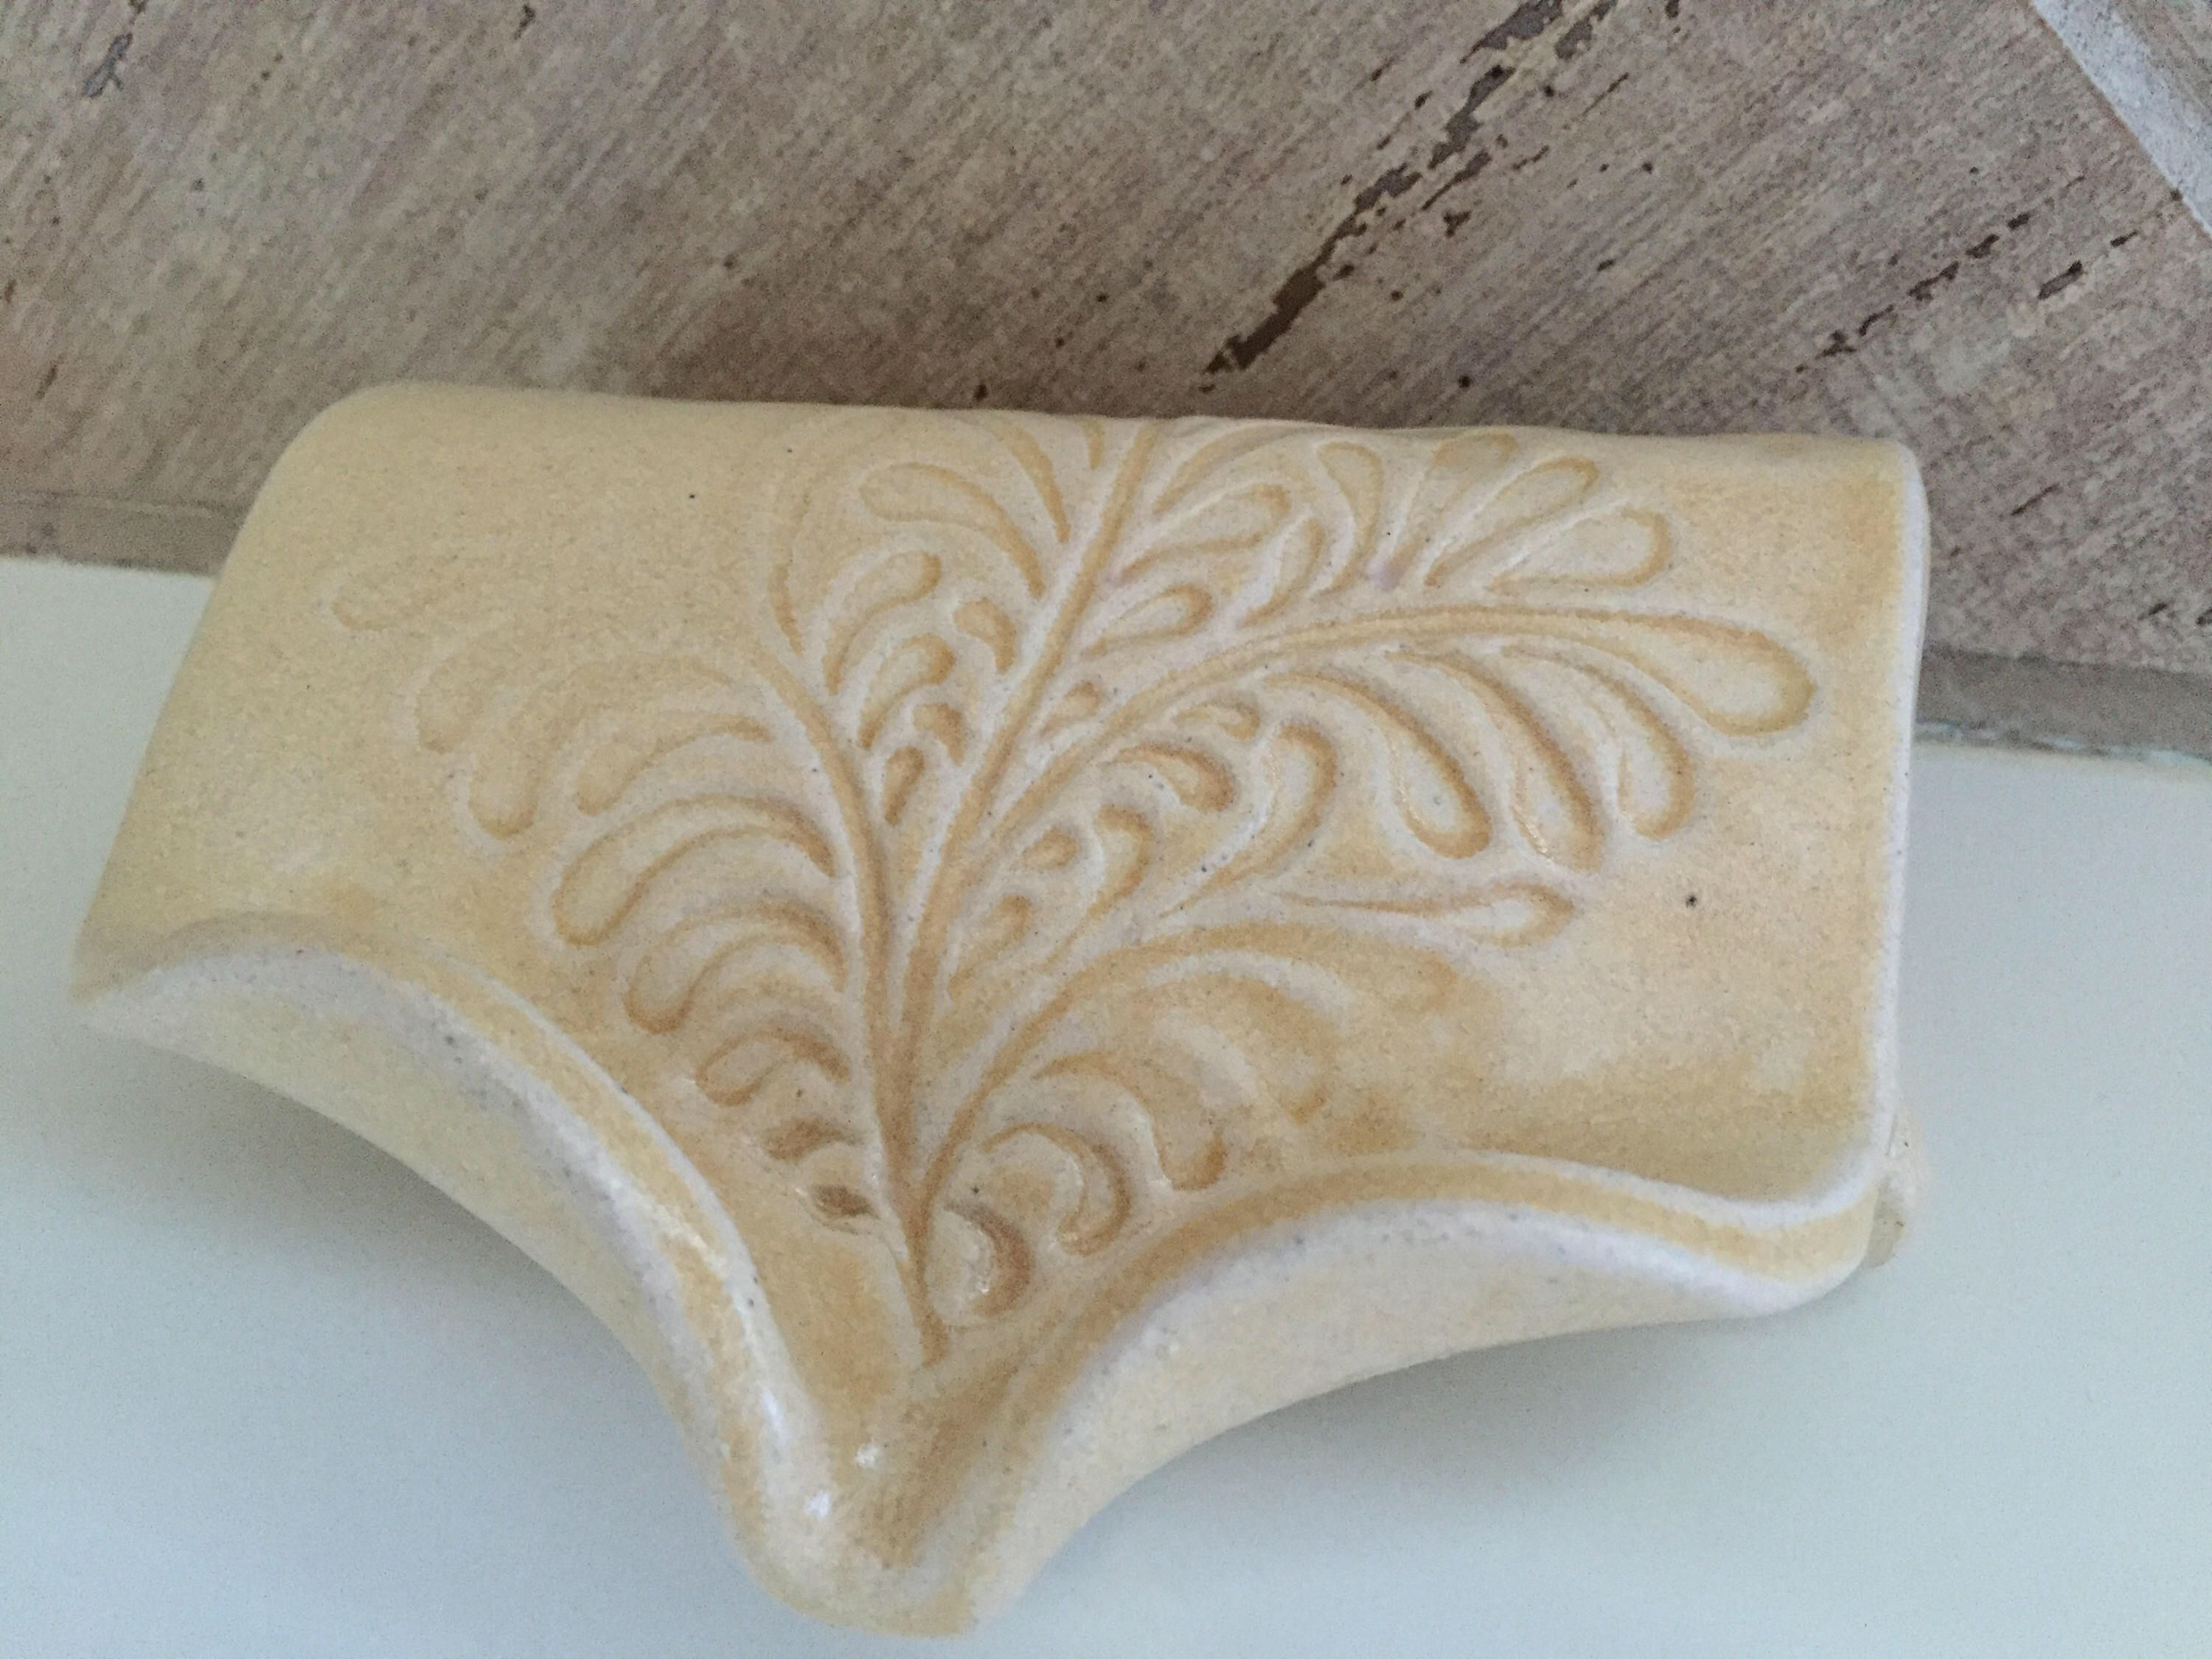 Pin by Linda Hanson on HAndBuILt poTteRy Diy dish soap